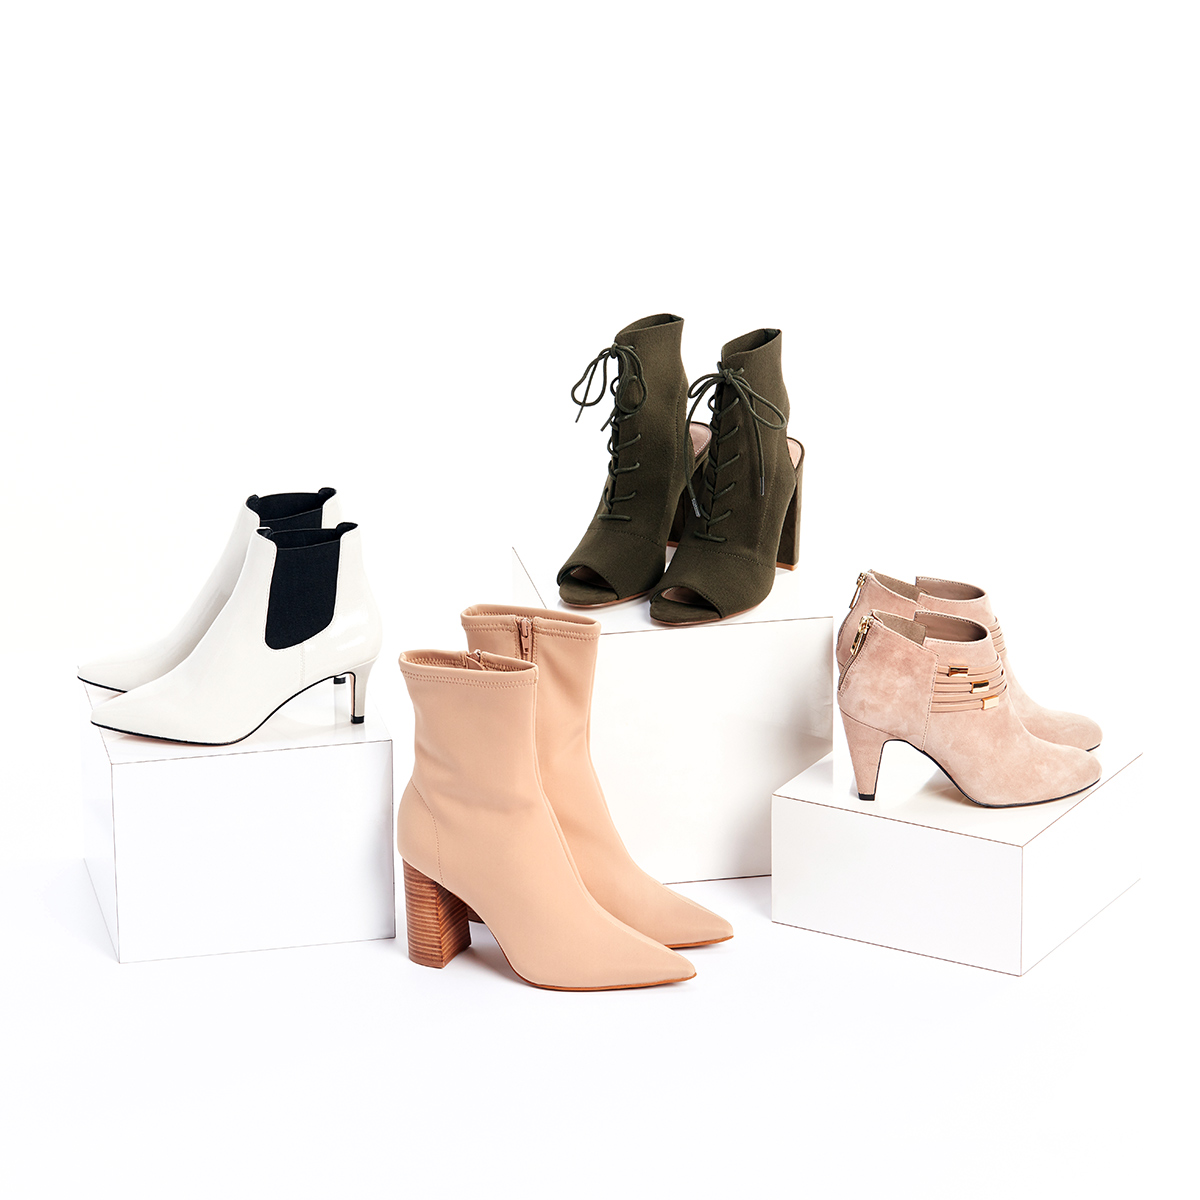 Four pairs of women's booties in white, olive and beige tones stacked on white boxes on a white background.